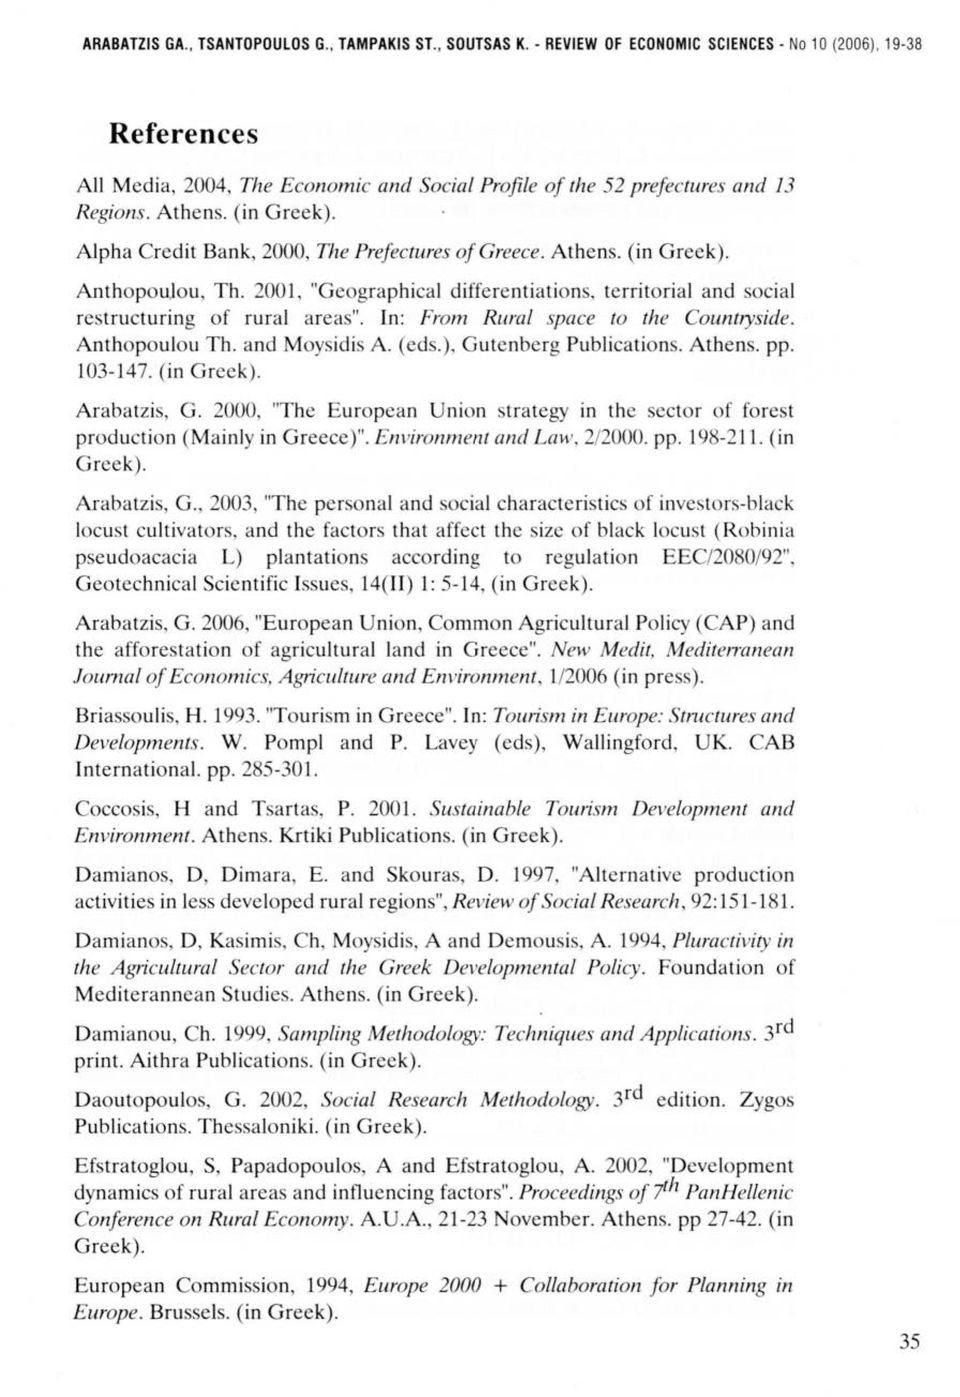 "AJpha Credit Bank, 2000, The Prefec ιures of Greece. Athens. (in Greek). Anthopo ujou, Th. 2001, ""Geographical di ffe rentiations, terri tori al and social restructuring of rural areas""."